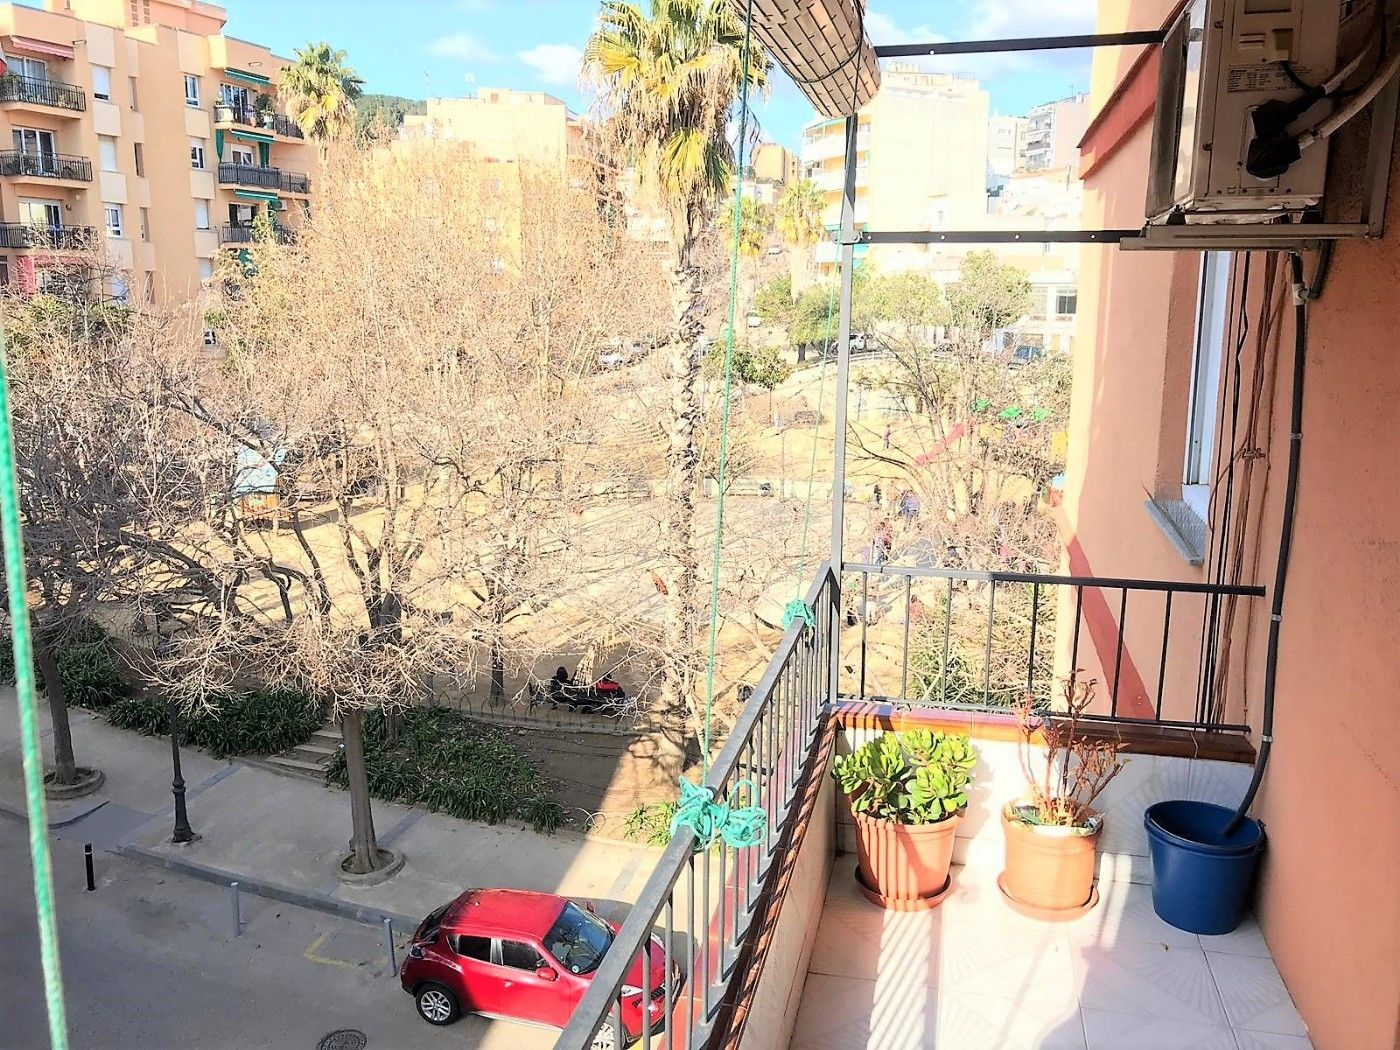 Appartement  Plaza 11 setembre. Piso céntrico con ascensor